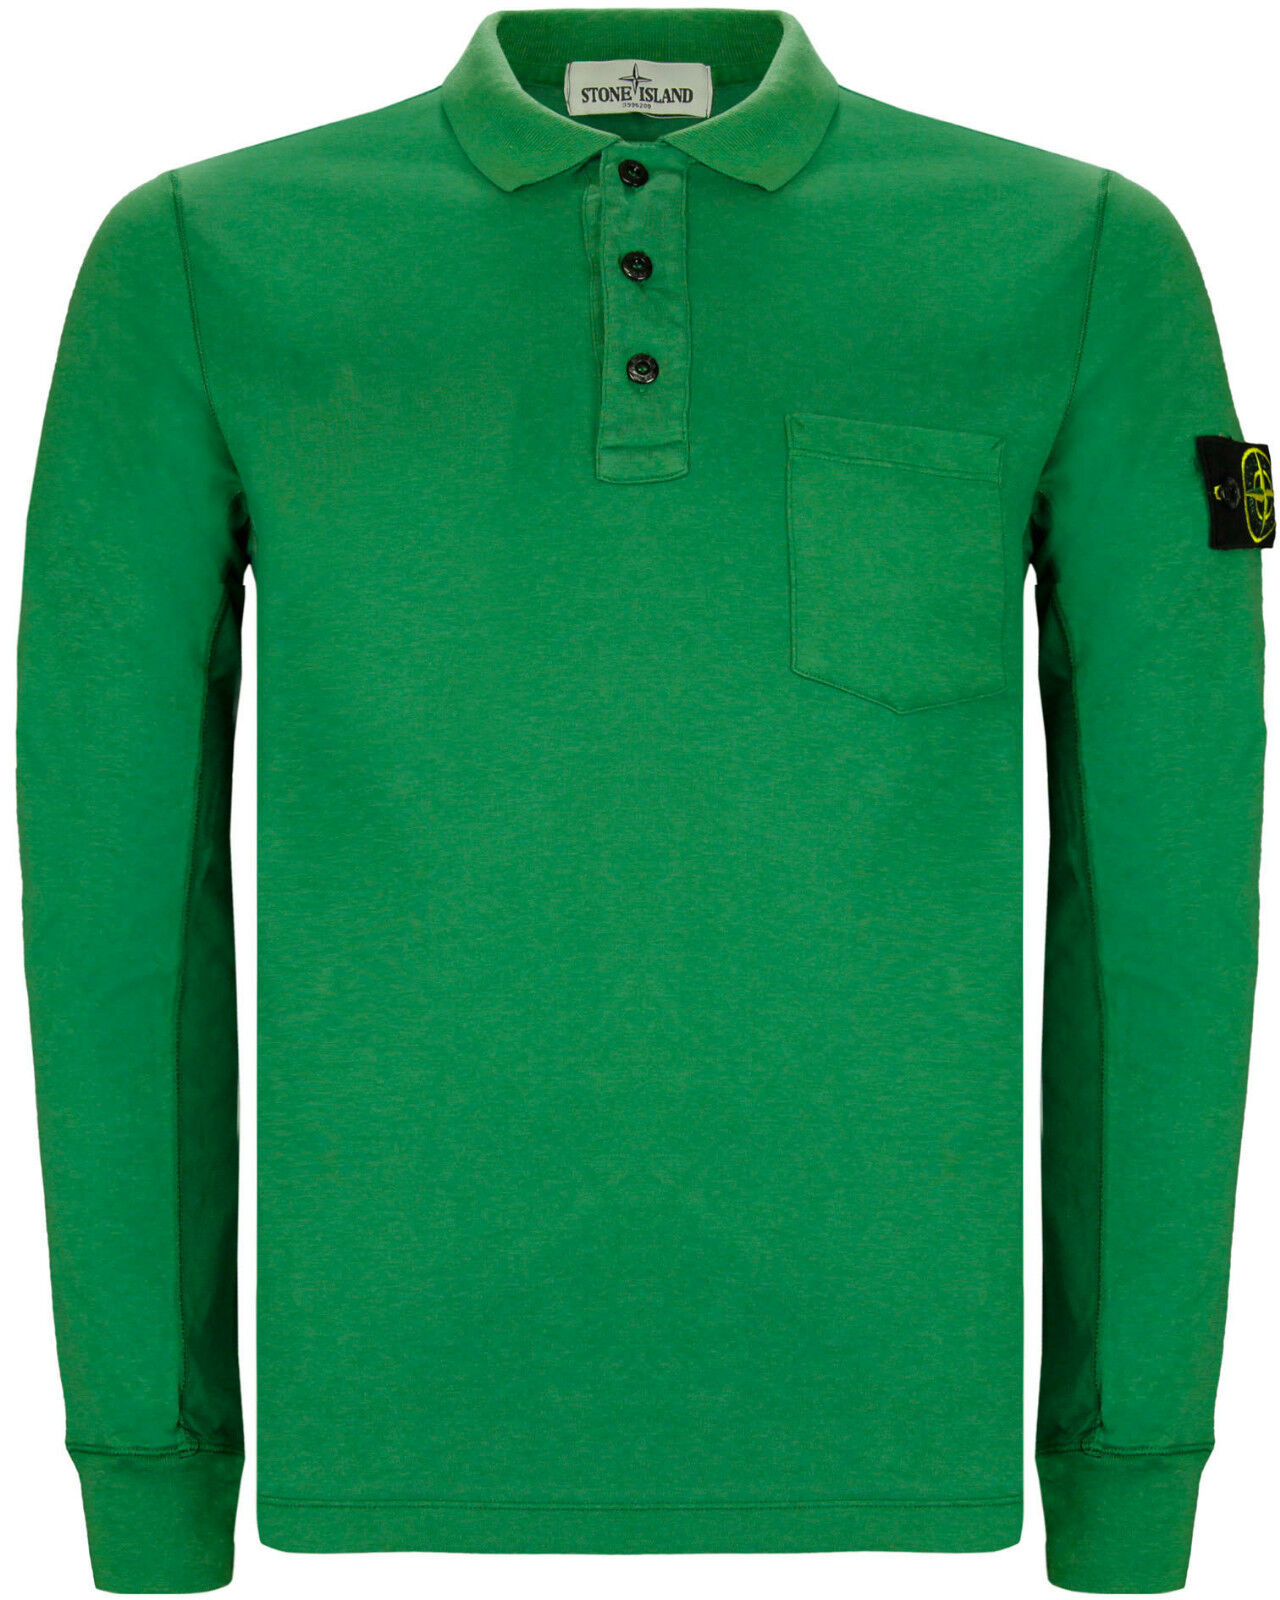 stone island men 39 s long sleeve pocket polo shirt ebay